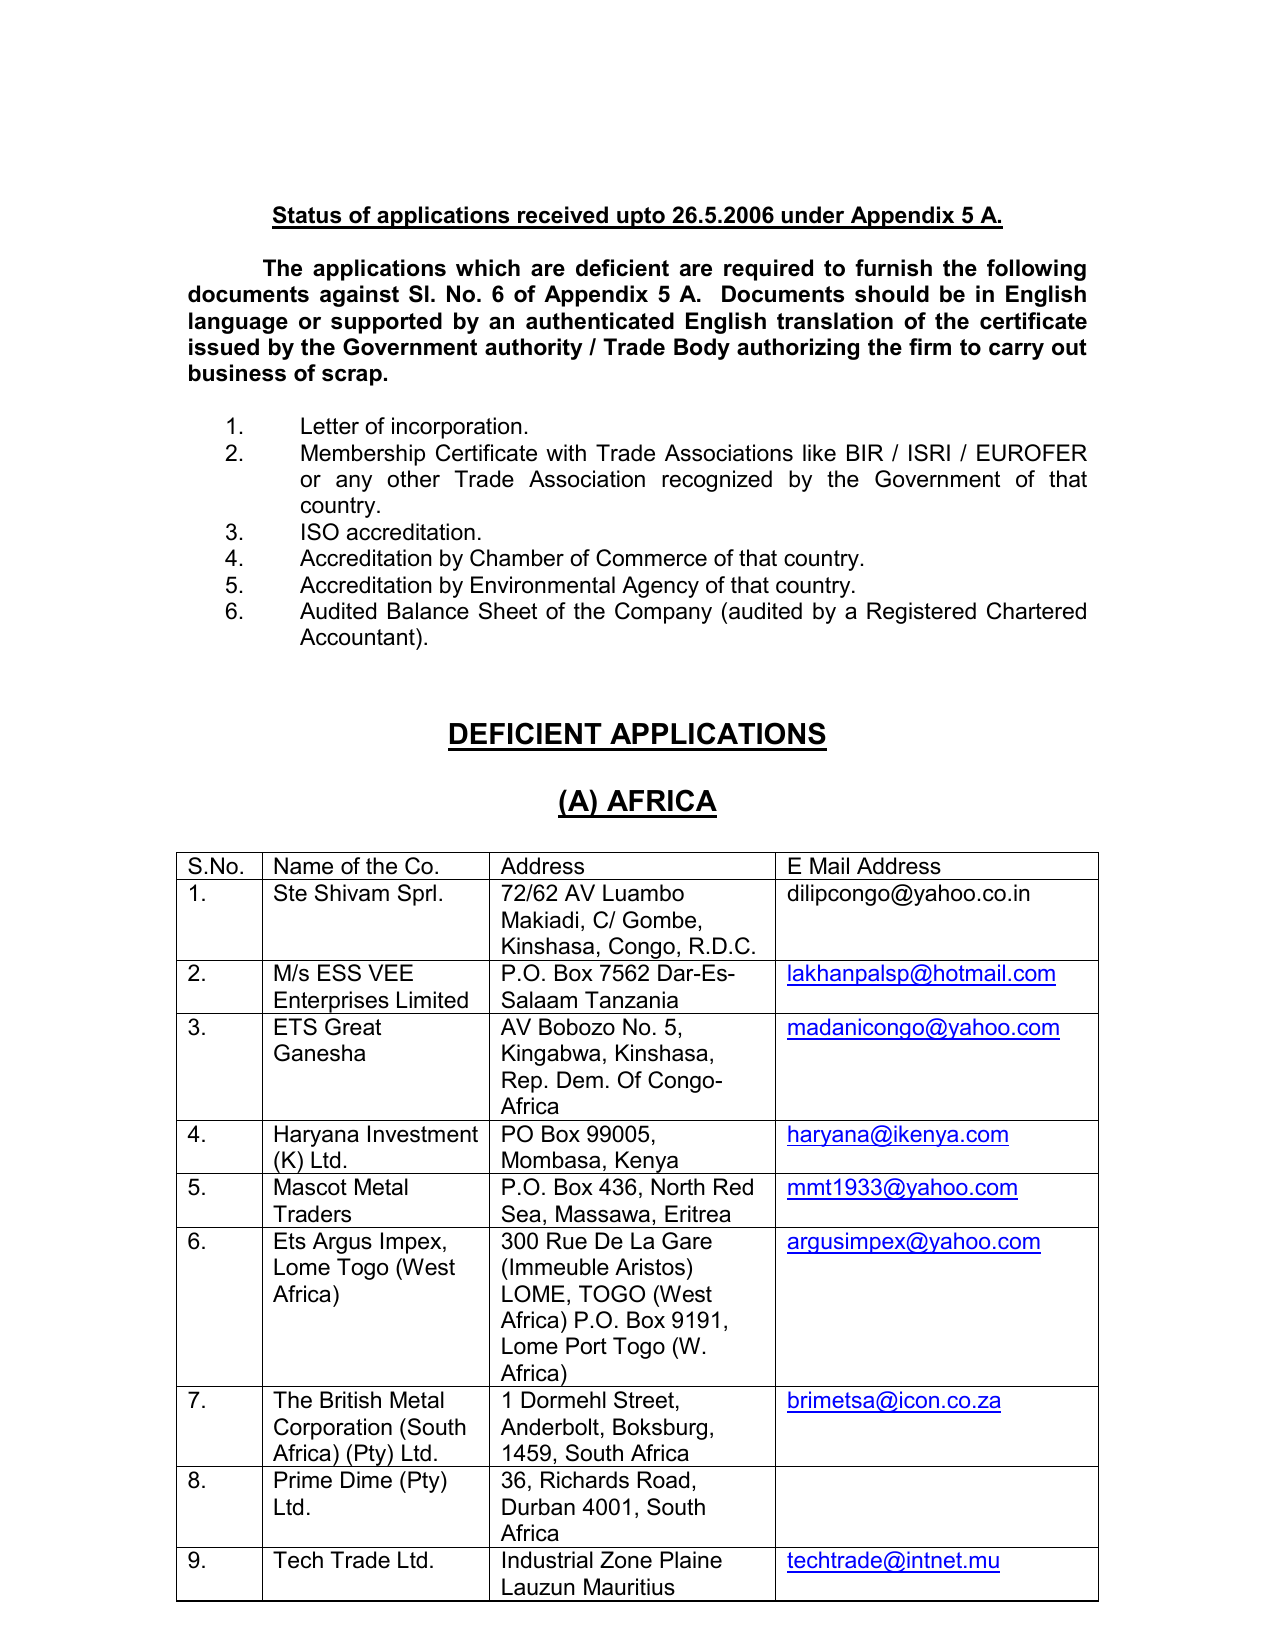 Status of applications received upto 27